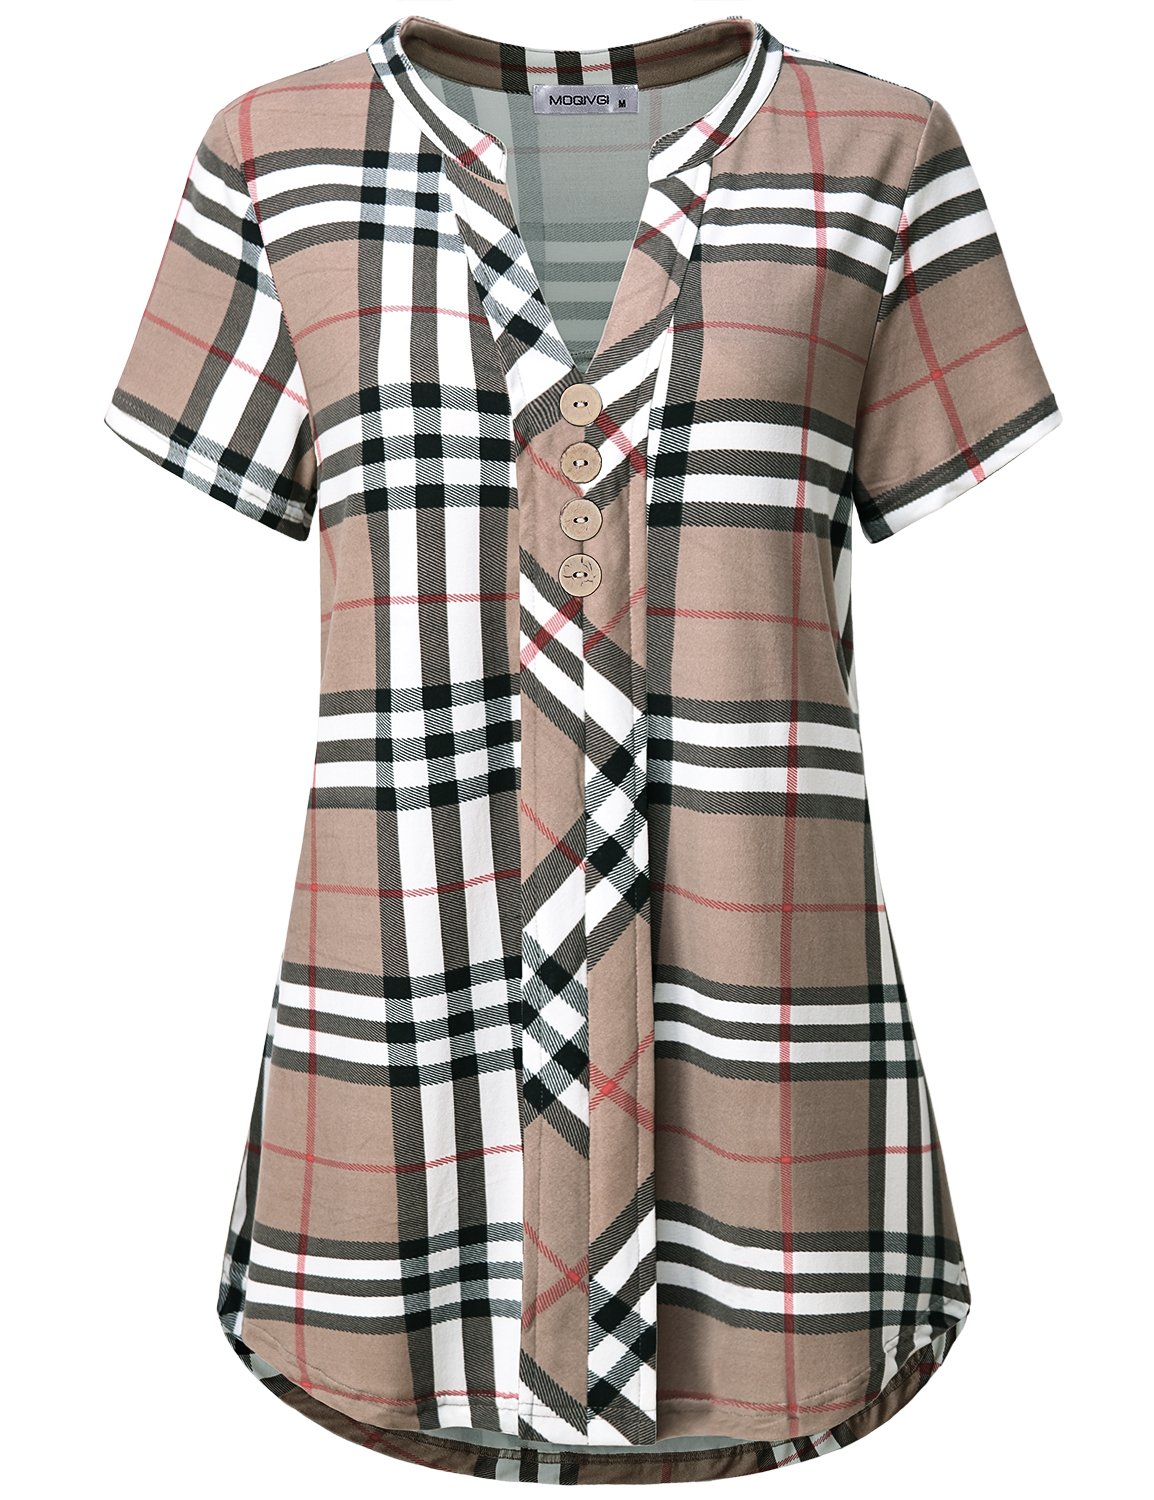 MOQIVGI Shirts for Women Casual,Trendy Plaid Pleated Flowy Color Block Curve Hem Tops Ladies Career Summer Dressy Office Work Blouses Buttons Henley Relaxed Fit Short Sleeve Tunics Apricot Medium